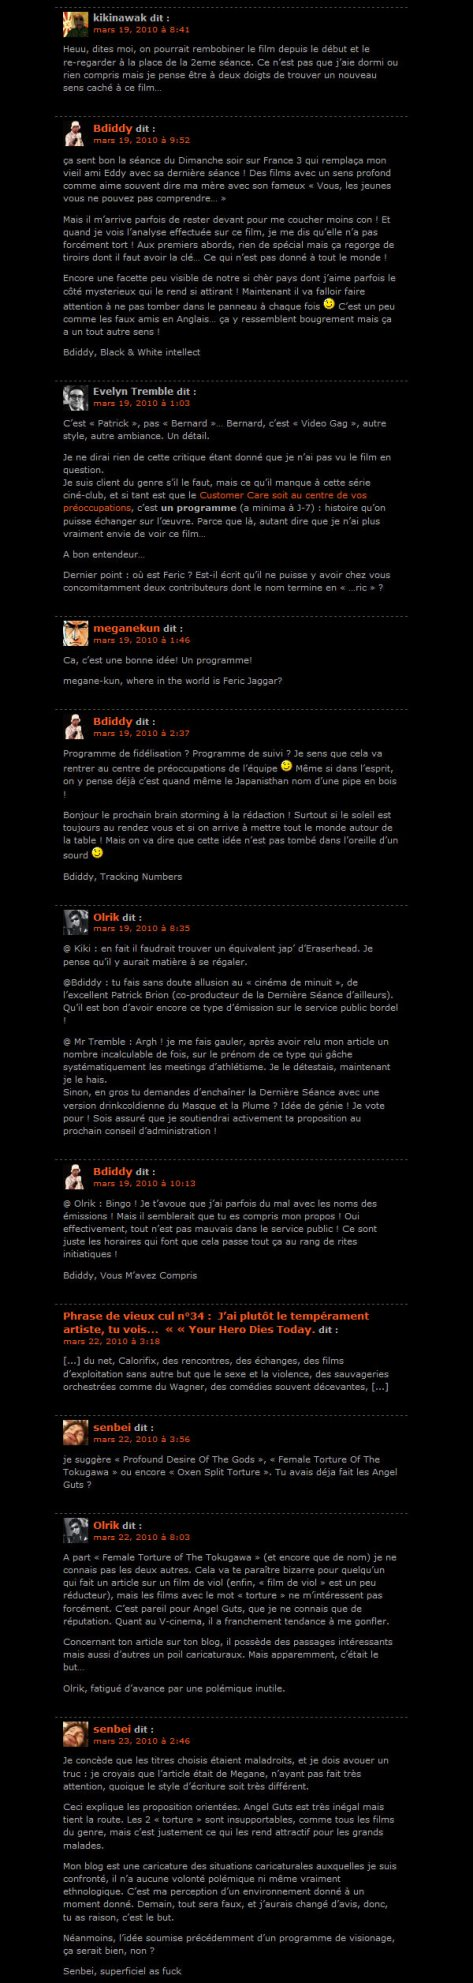 naked-pursuit-commentaires2